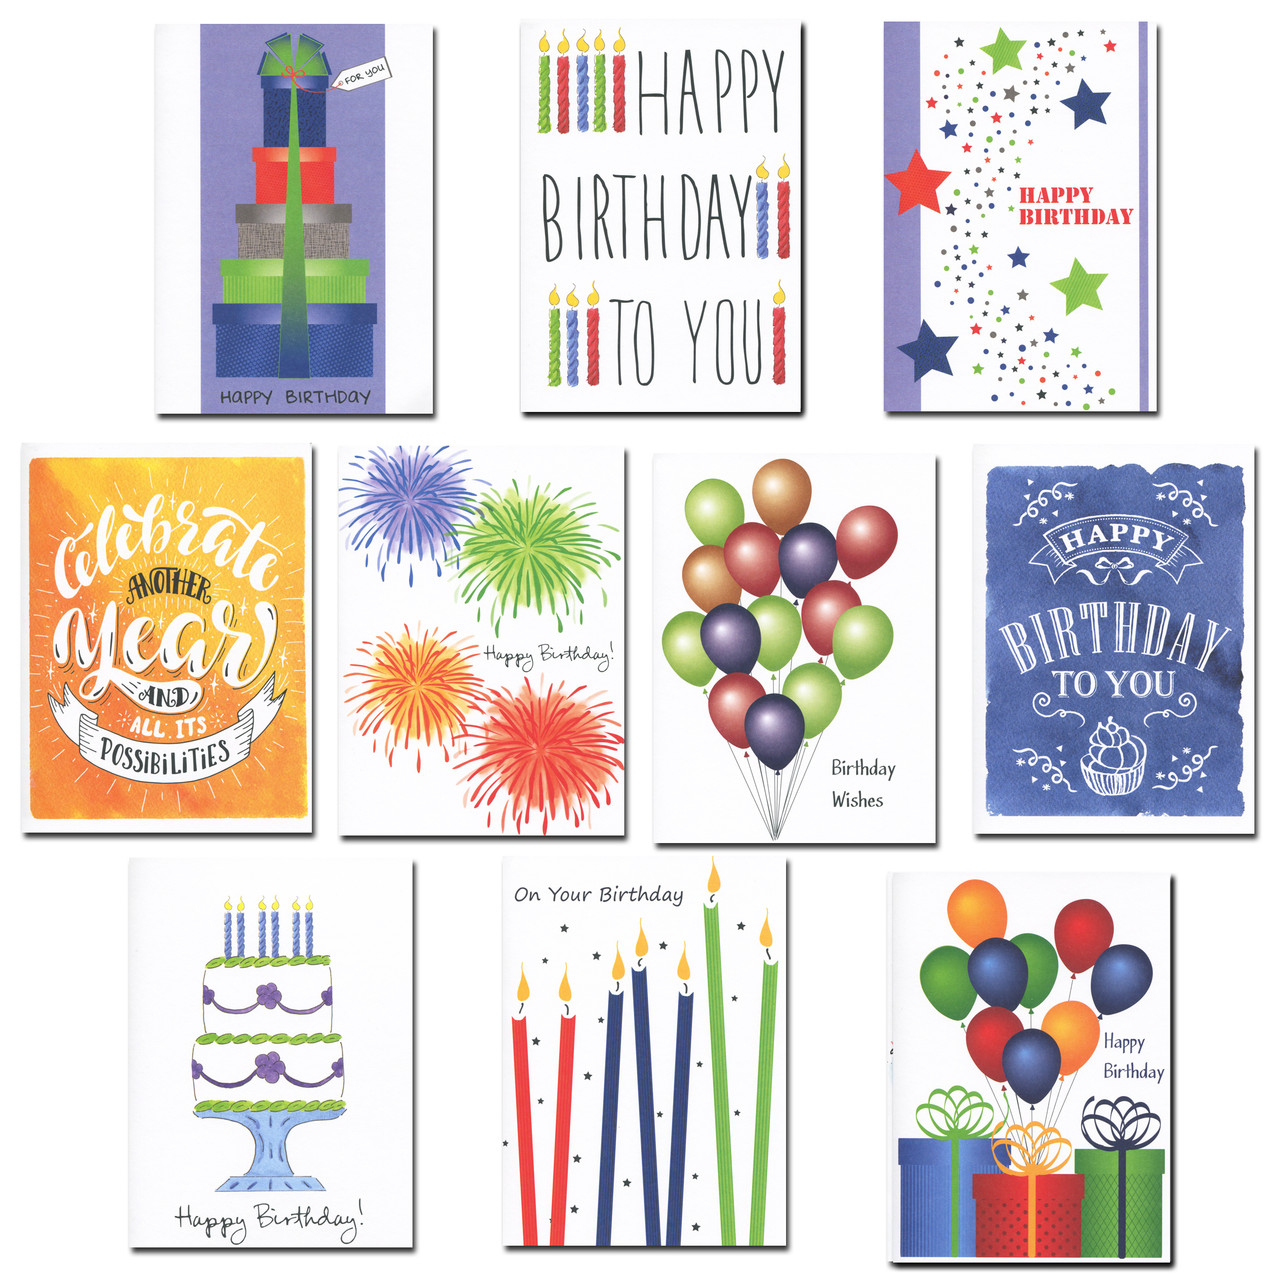 Boxed Birthday Cards - Birthday Brights  Assortment has 30 cards, 3 each of 10 different styles